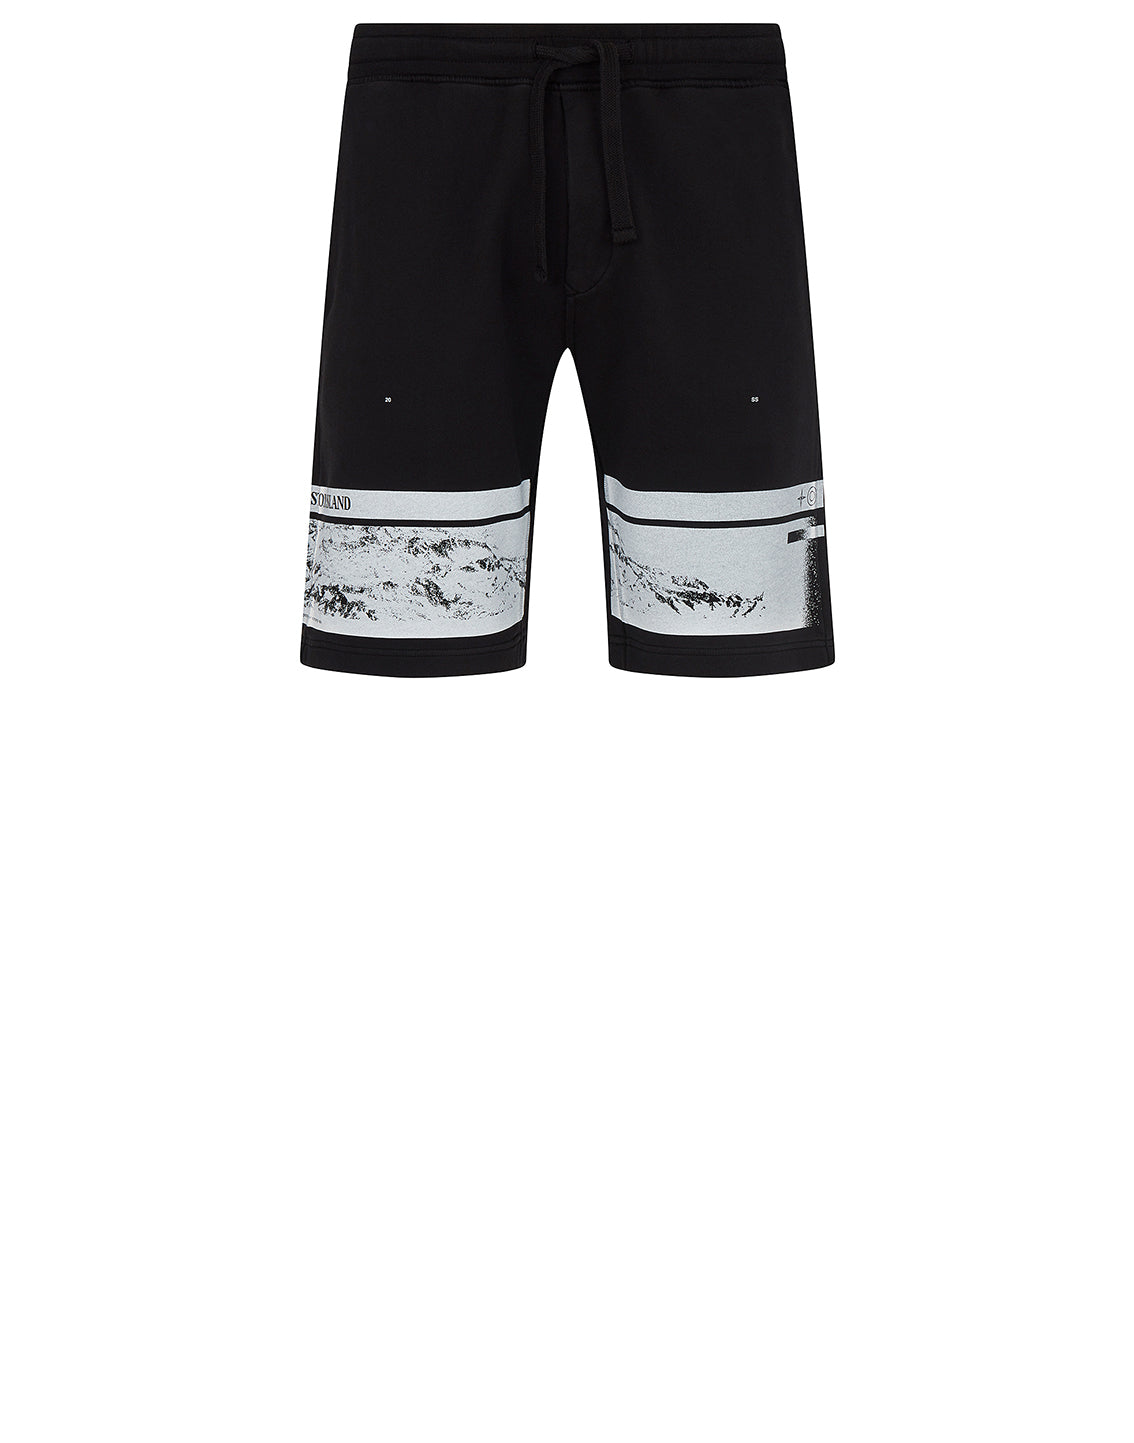 66595 'DRONE FOUR' Fleece Shorts in Black